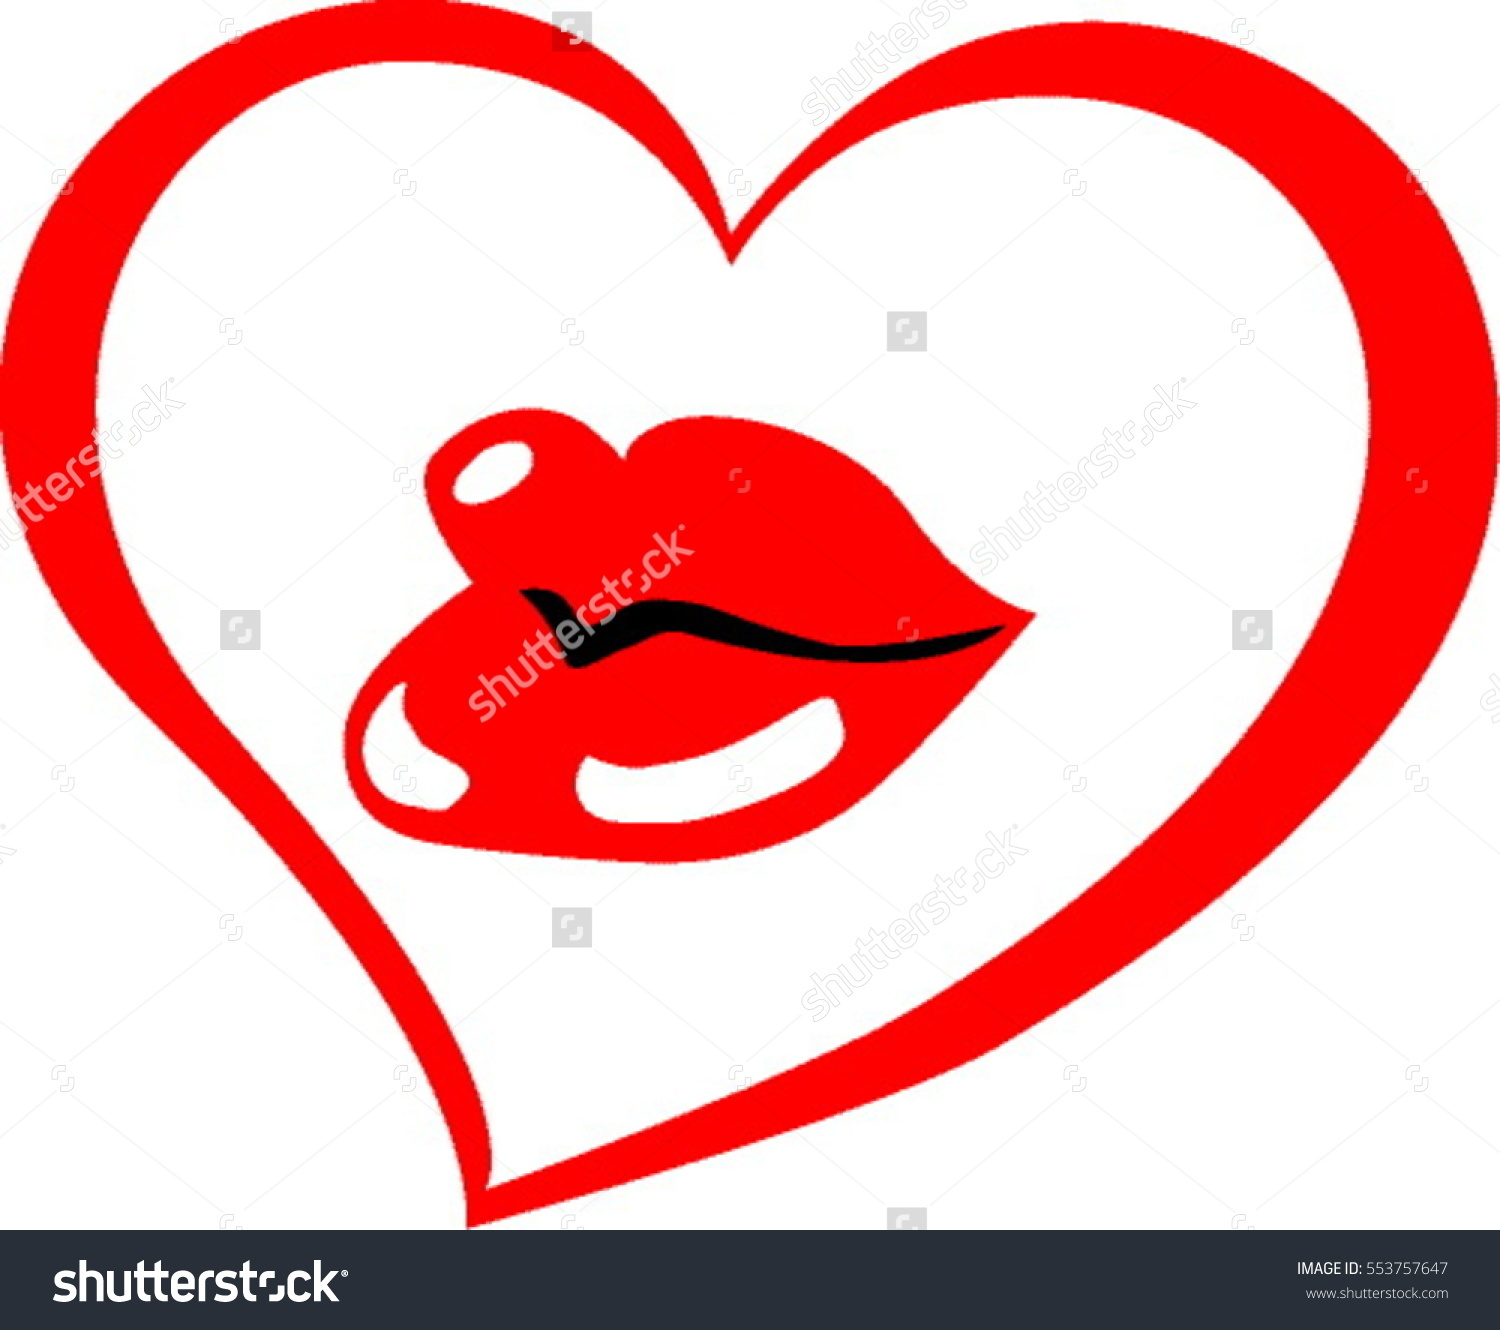 Sexy Glossy Red Lips Heart Frame Stock Vector 553757647.